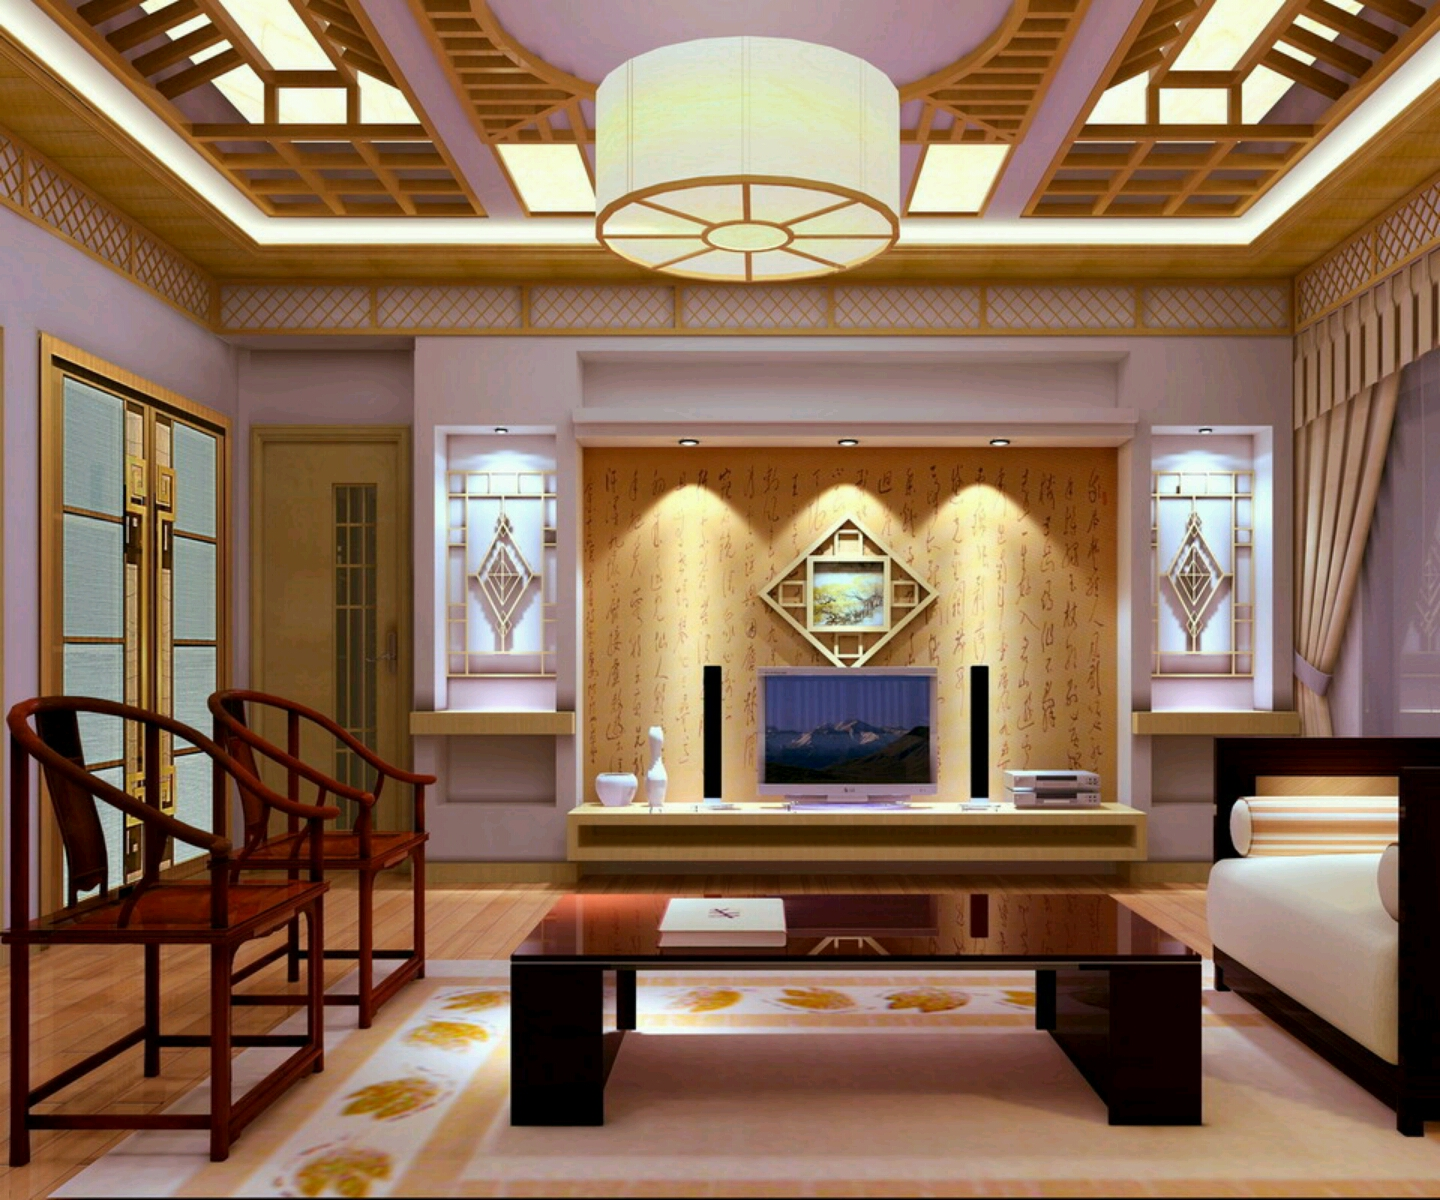 New home designs latest homes interior designs studyrooms for Latest home interior designs images